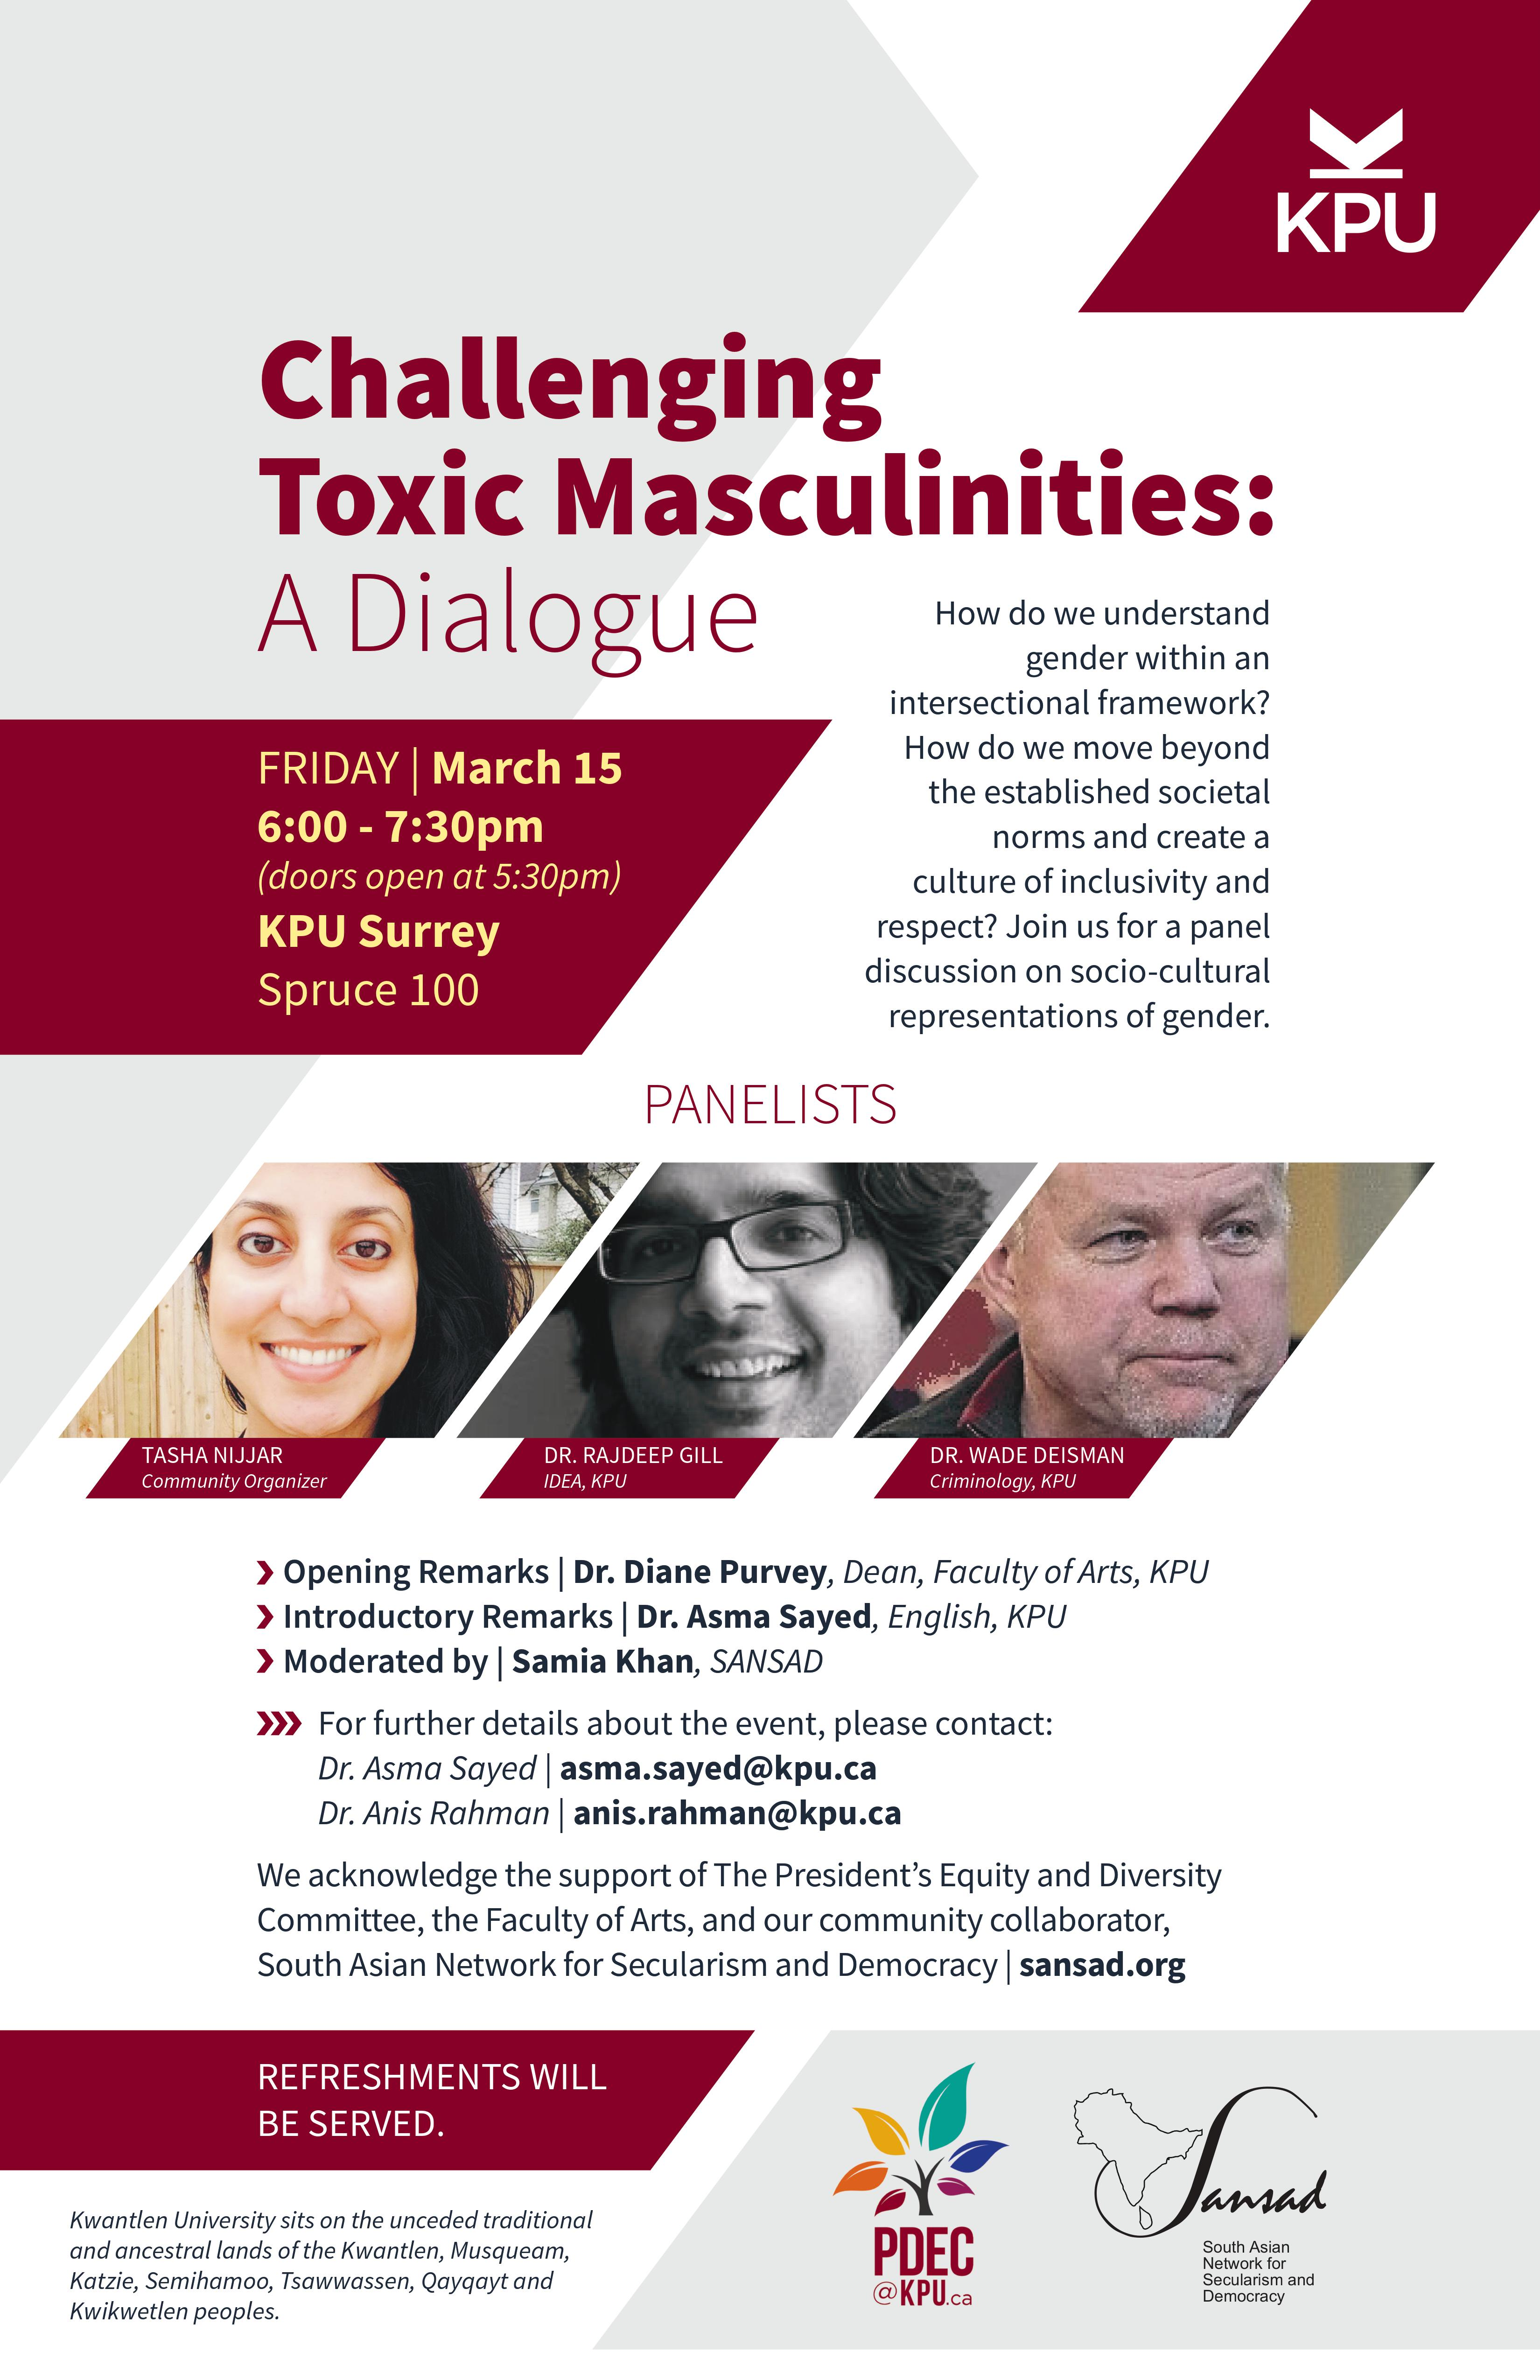 Challenging Toxic Masculinities